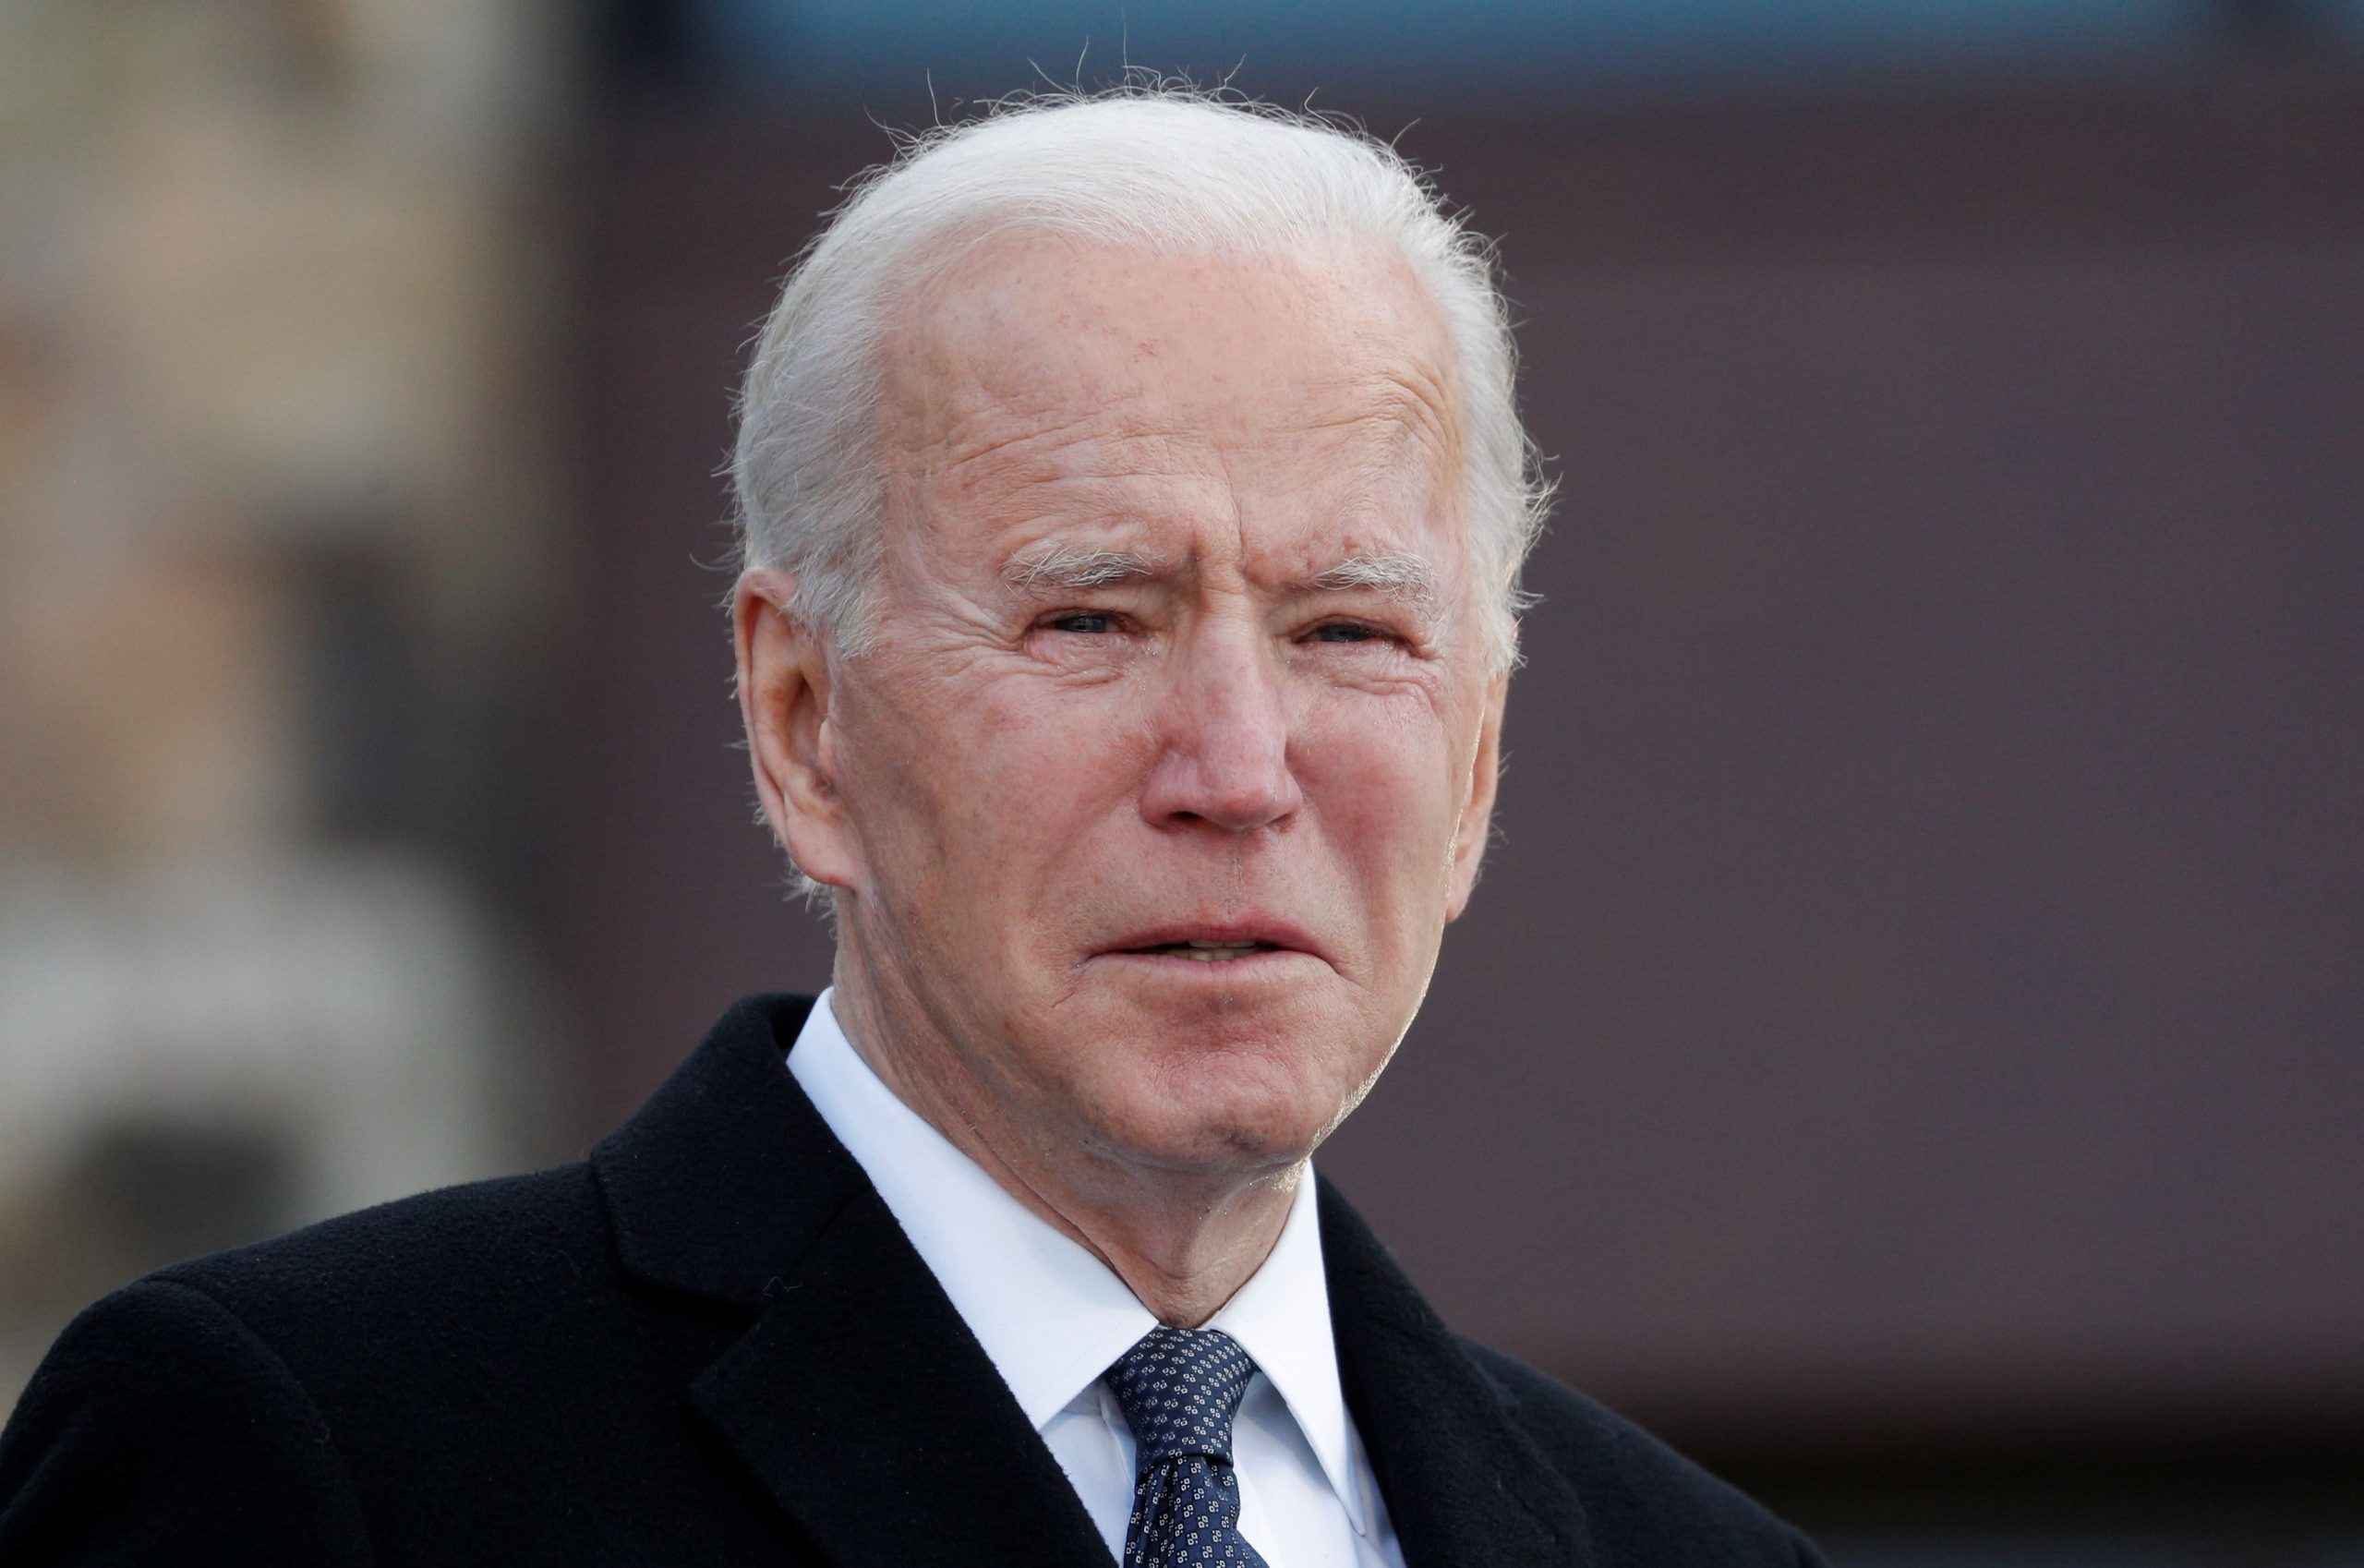 Stock futures flat in early morning trading ahead of Biden's inauguration